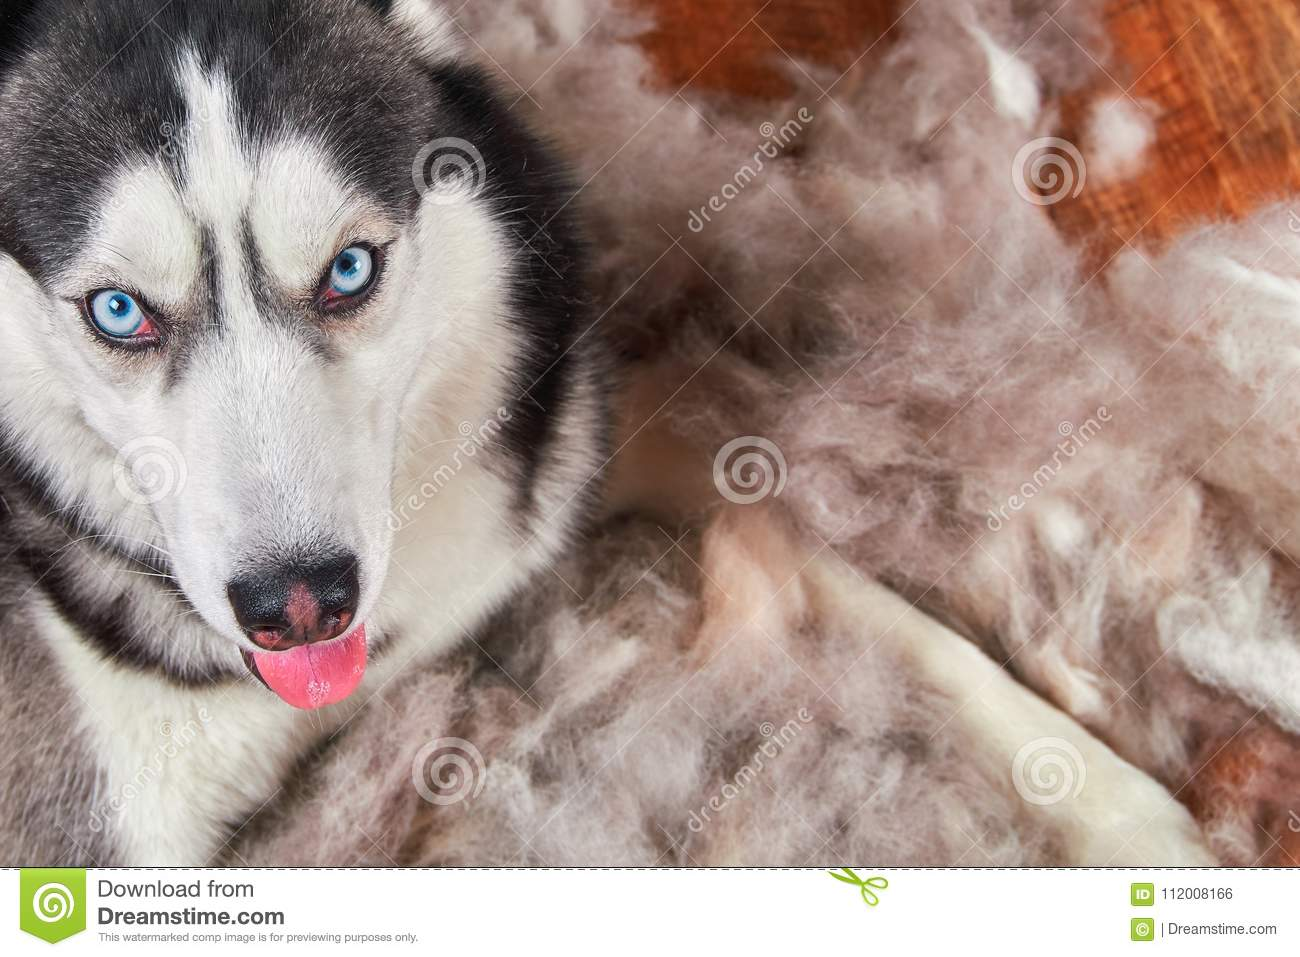 Concept annual molt, coat shedding, moulting dogs. Siberian husky lies on wooden floor in pile his fur. Top view.